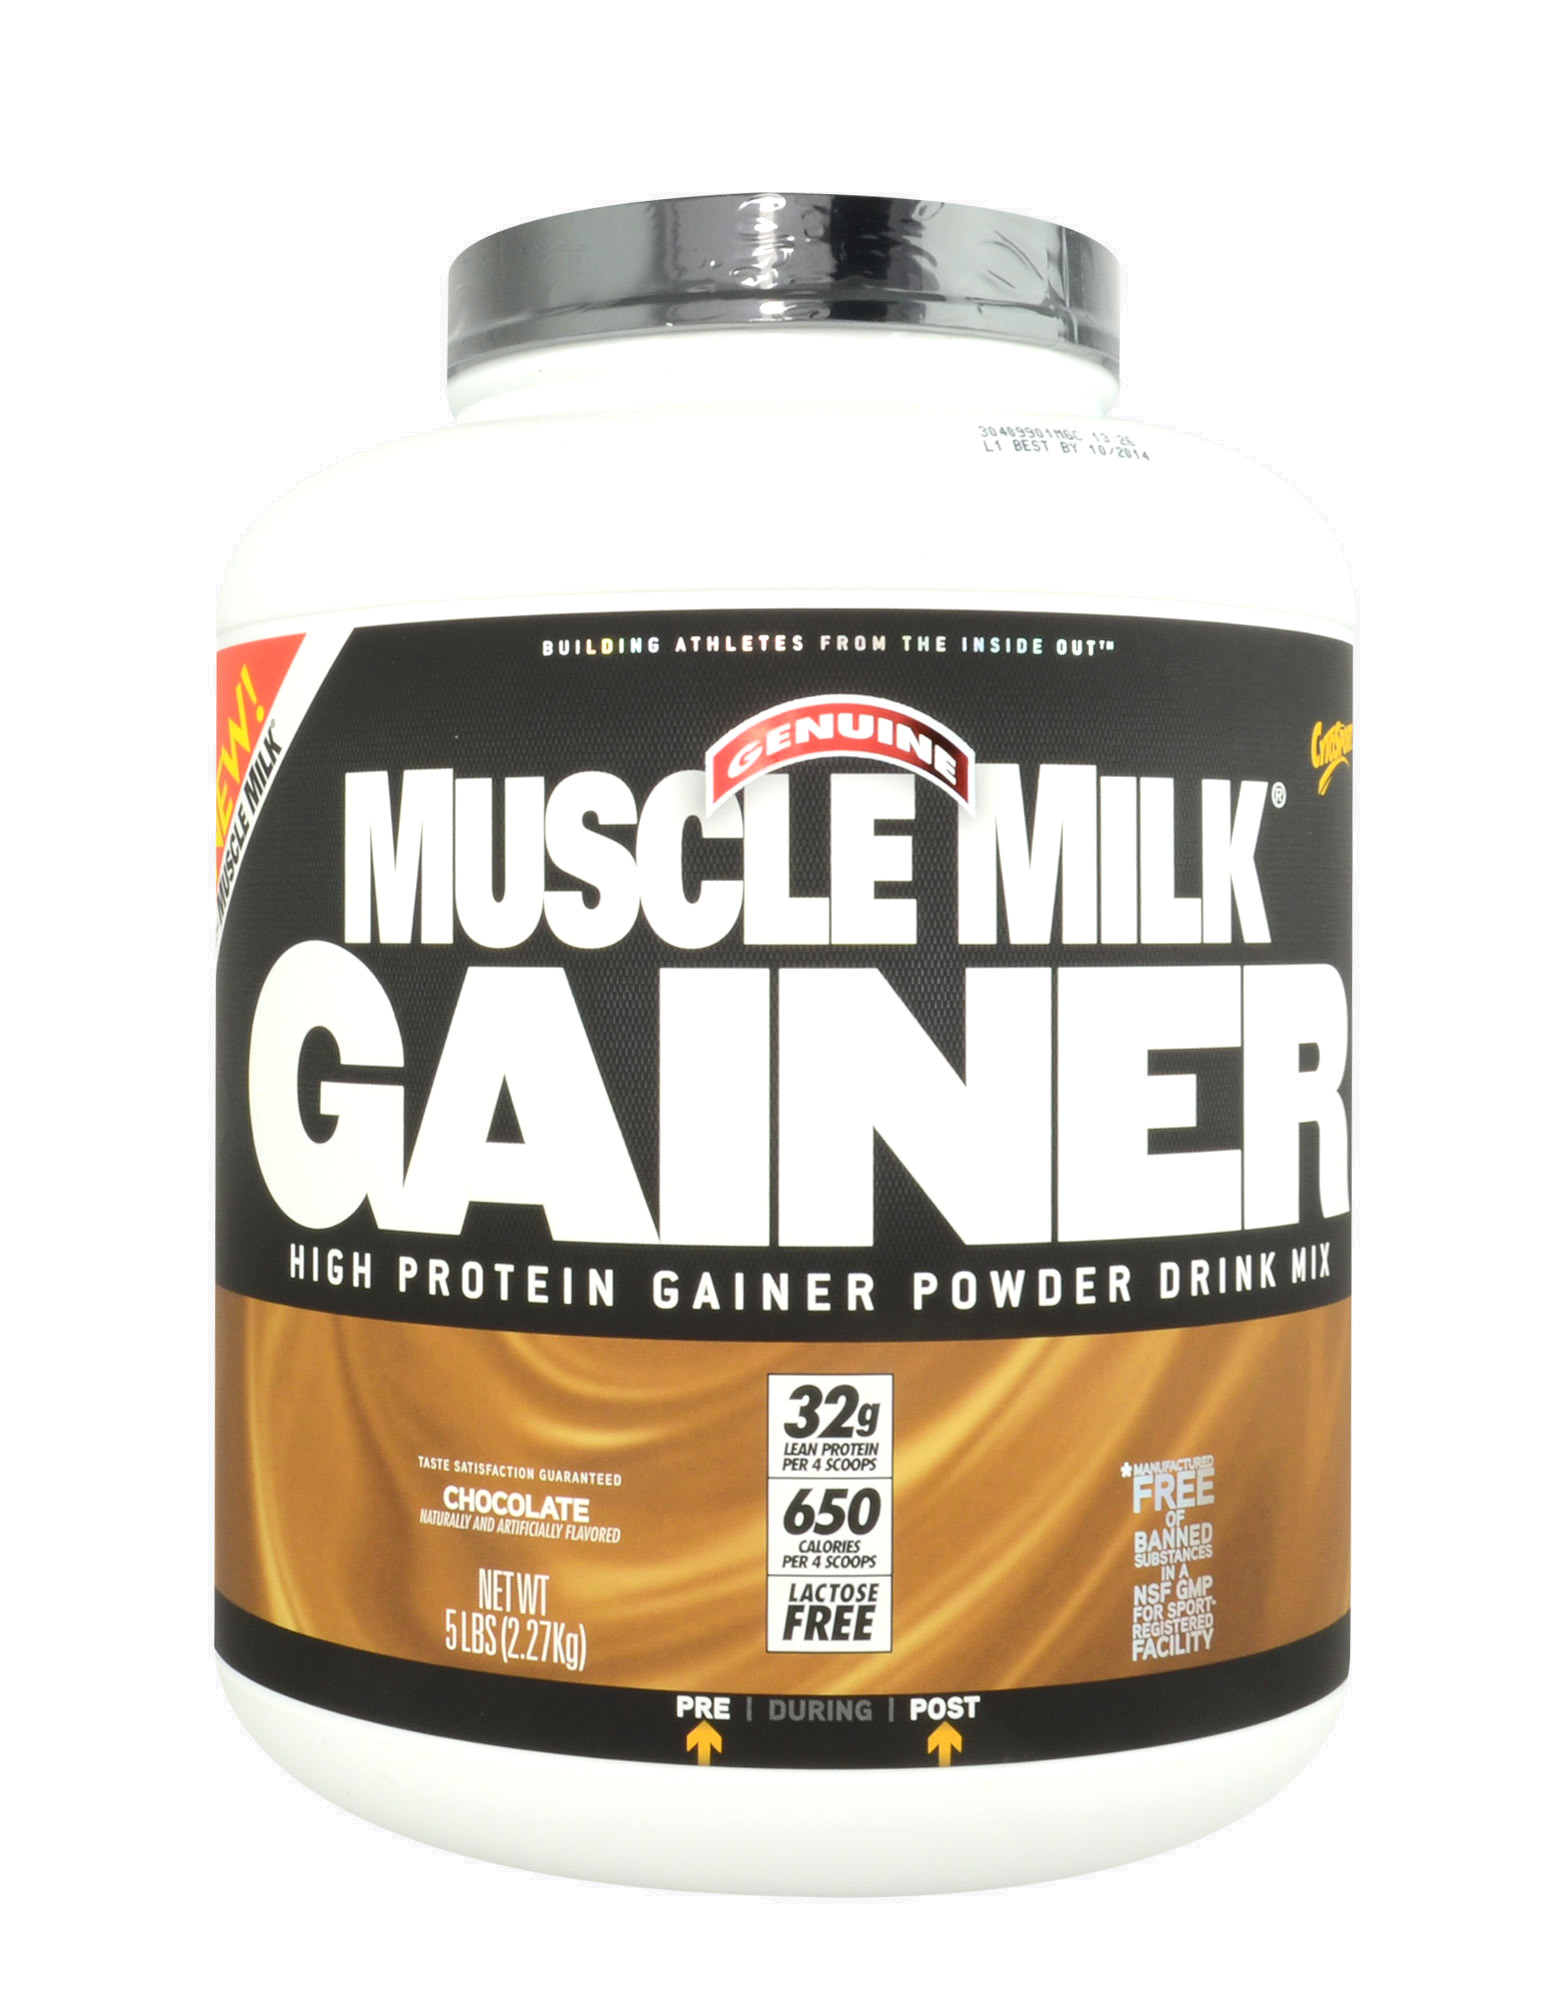 Muscle Milk Gainer by Cytosport, 2270